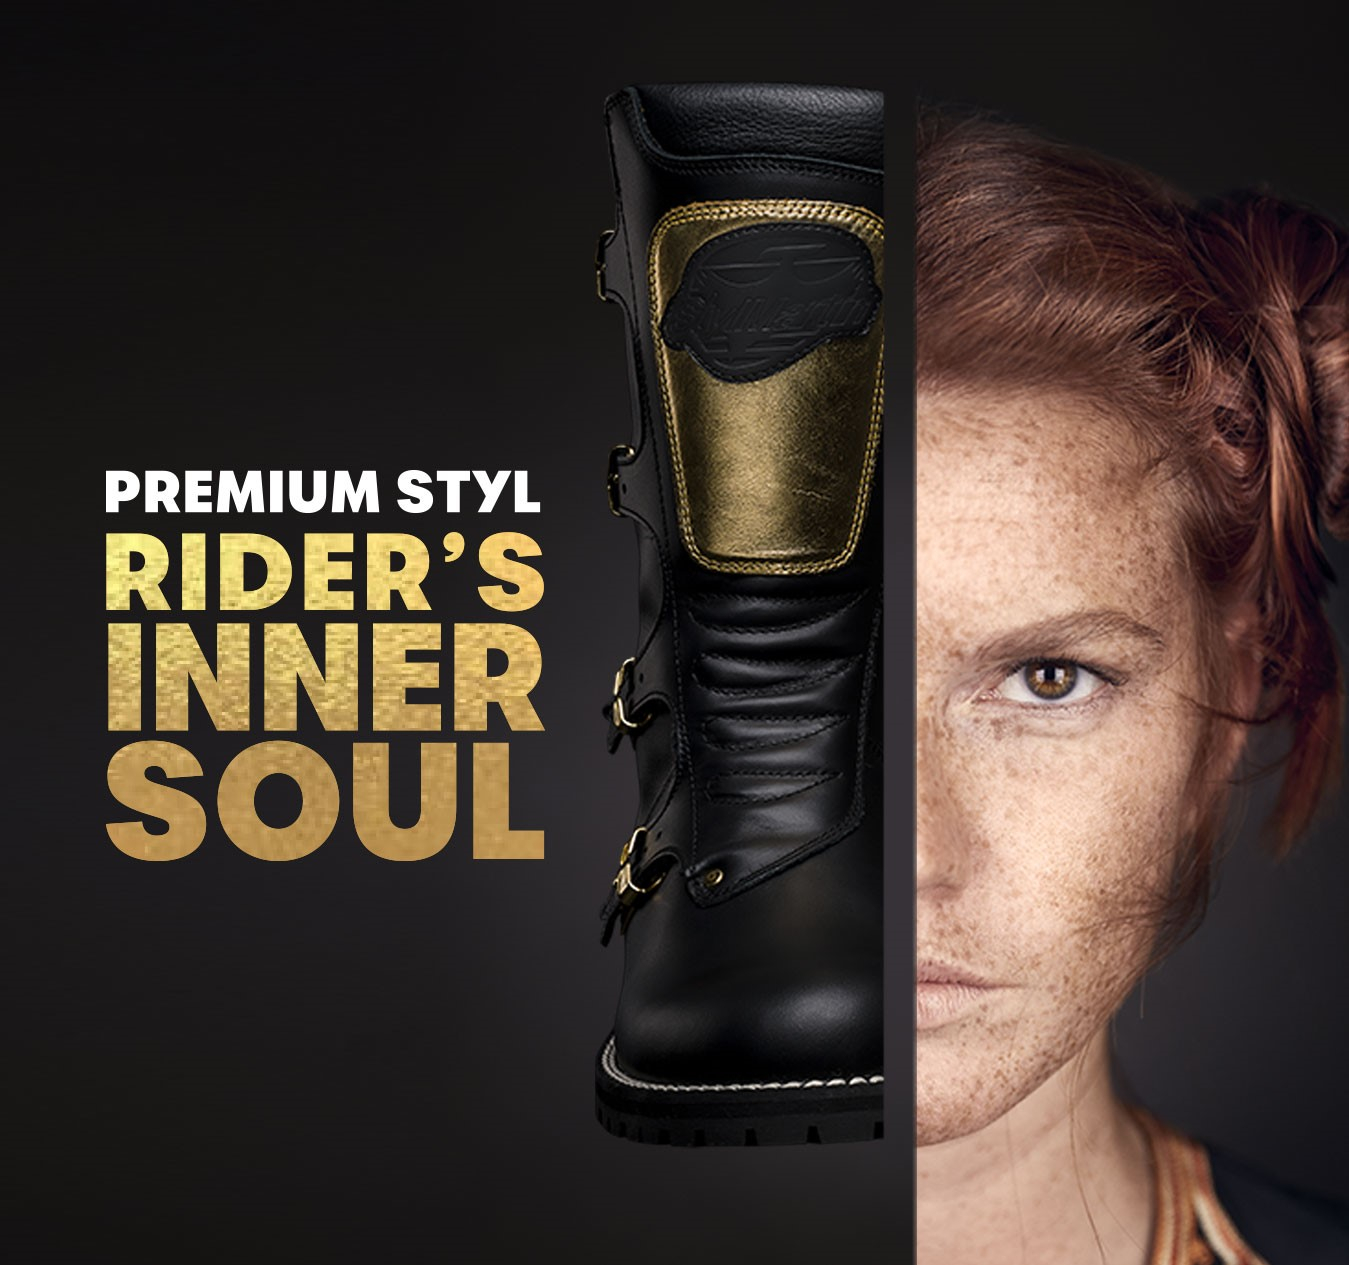 Premium Styl women's fashion shoes: Rider's Inner Soul. Asia, a story of freedom and independence.